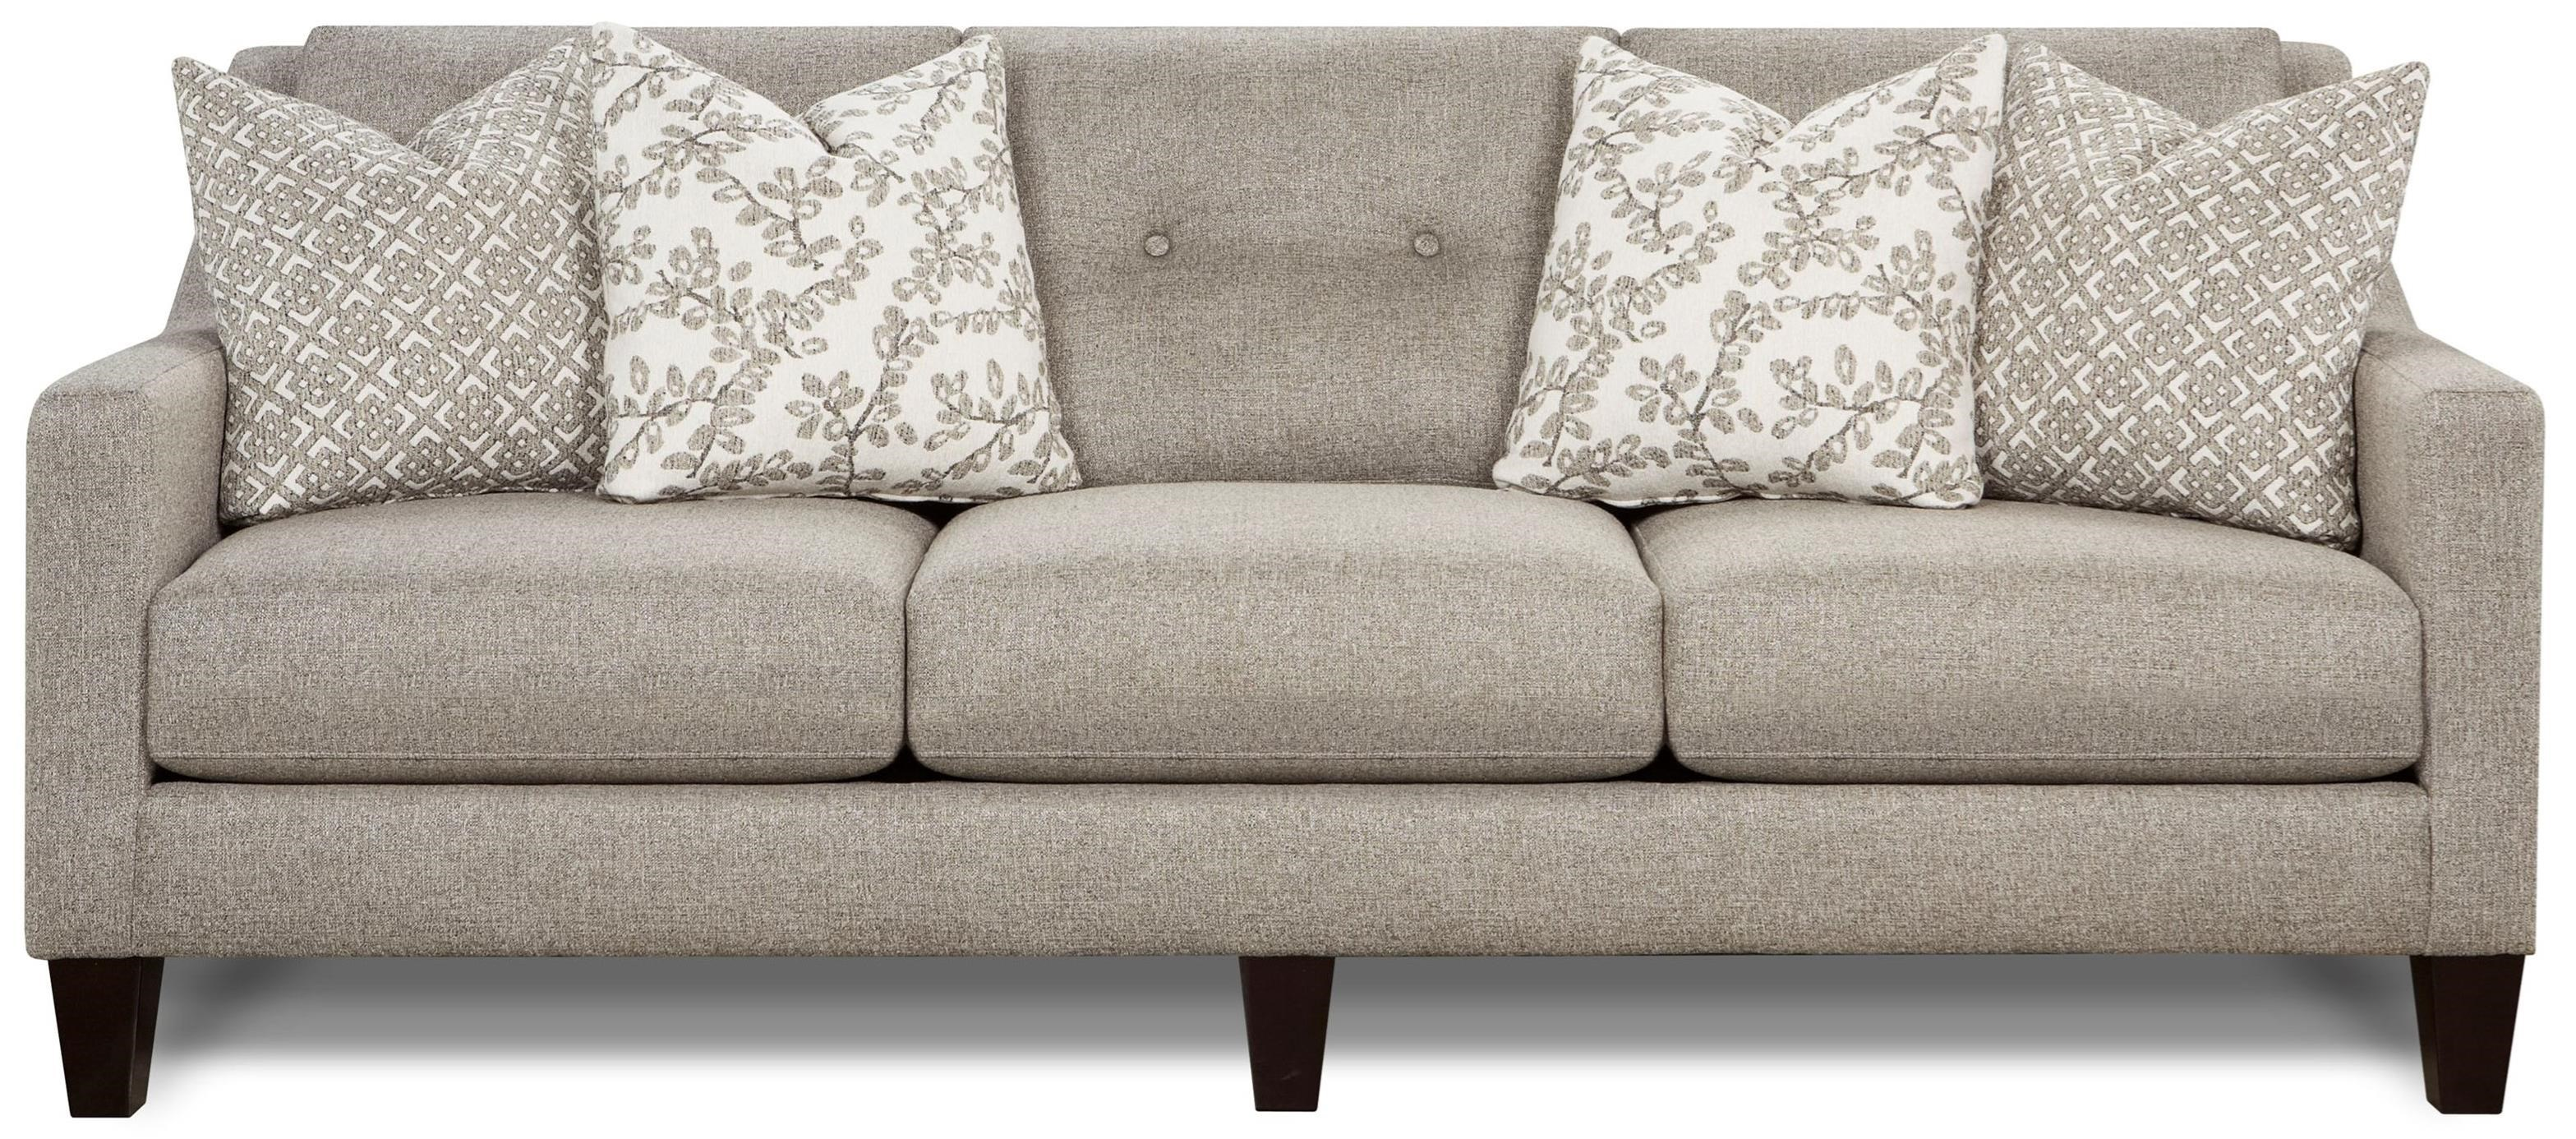 Fusion Furniture Evening Stone Contemporary Sofa With Track Arms Royal Furniture Sofas